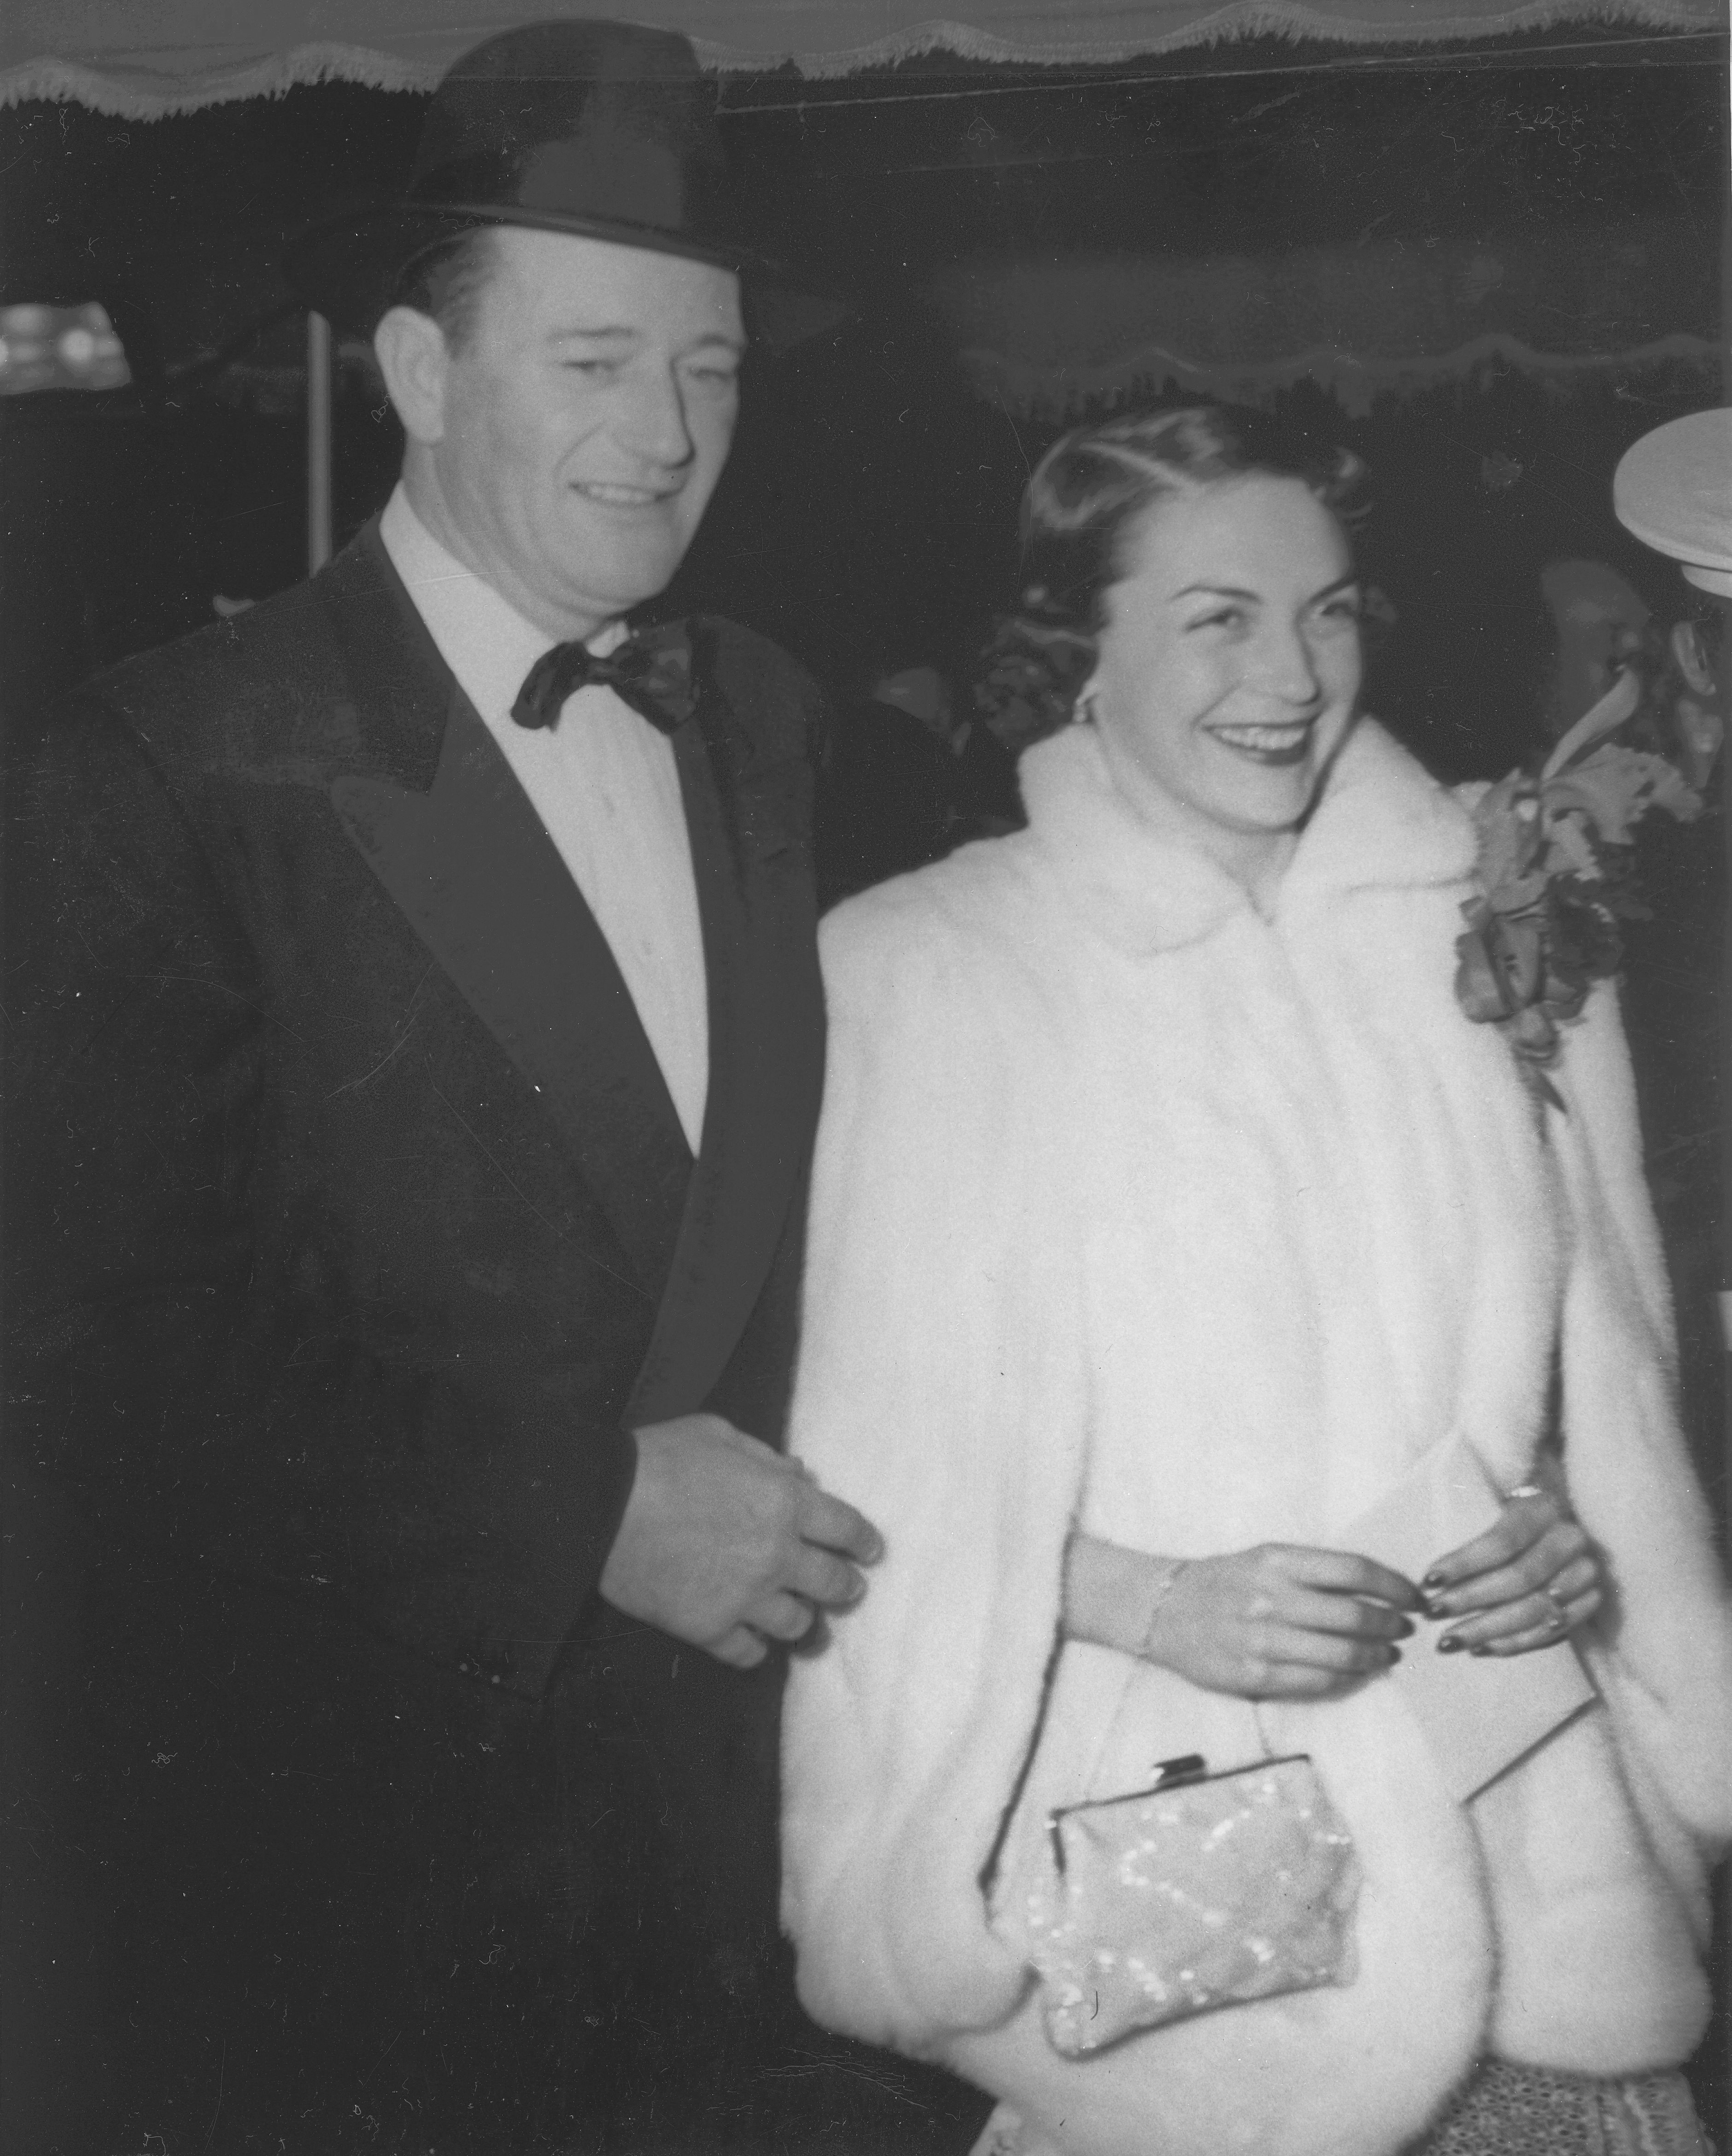 """John Wayne and his wife, Esperanza Baur arrive at the """"Sands of Iwo Jima"""" premiere.   Source: Wikimedia Commons By USMC Archives, CC BY 2.0"""